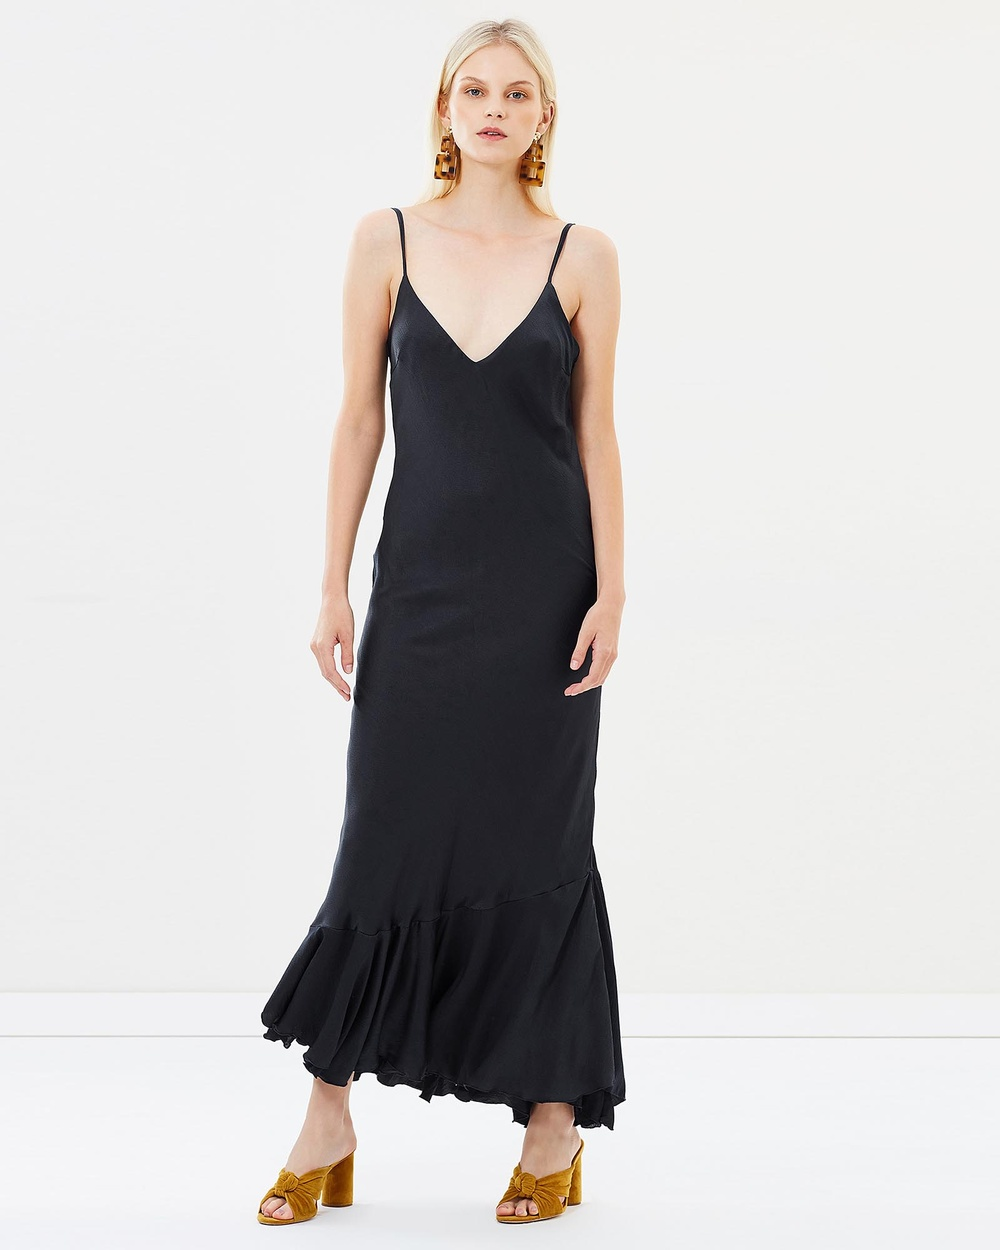 Isabelle Quinn Estelle Midi Slip Dress Bridesmaid Dresses Navy Estelle Midi Slip Dress